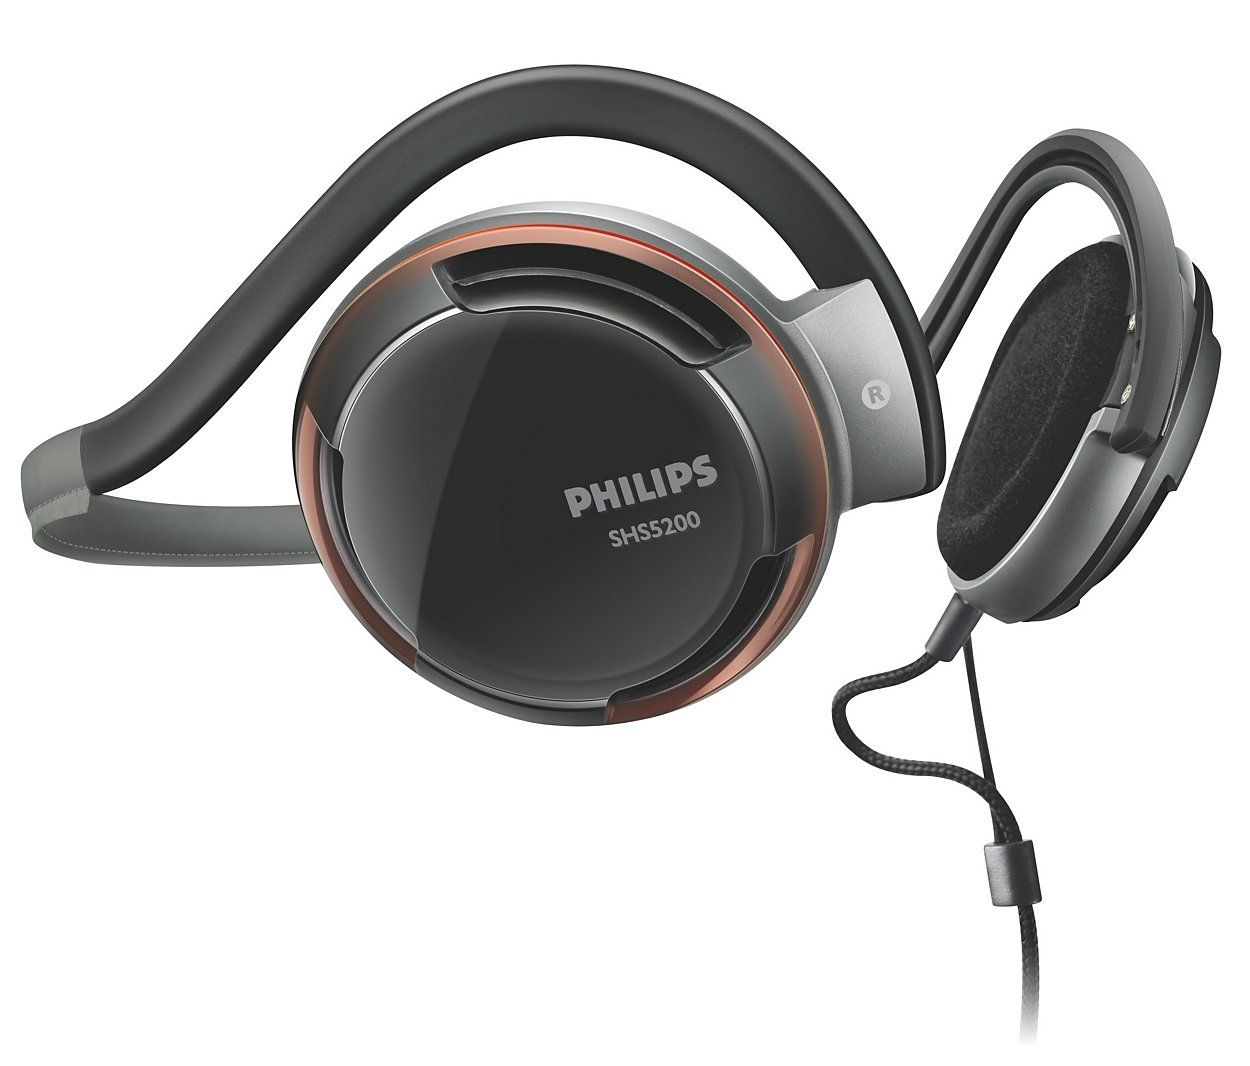 Наушники Philips SHS5200 от Ravta